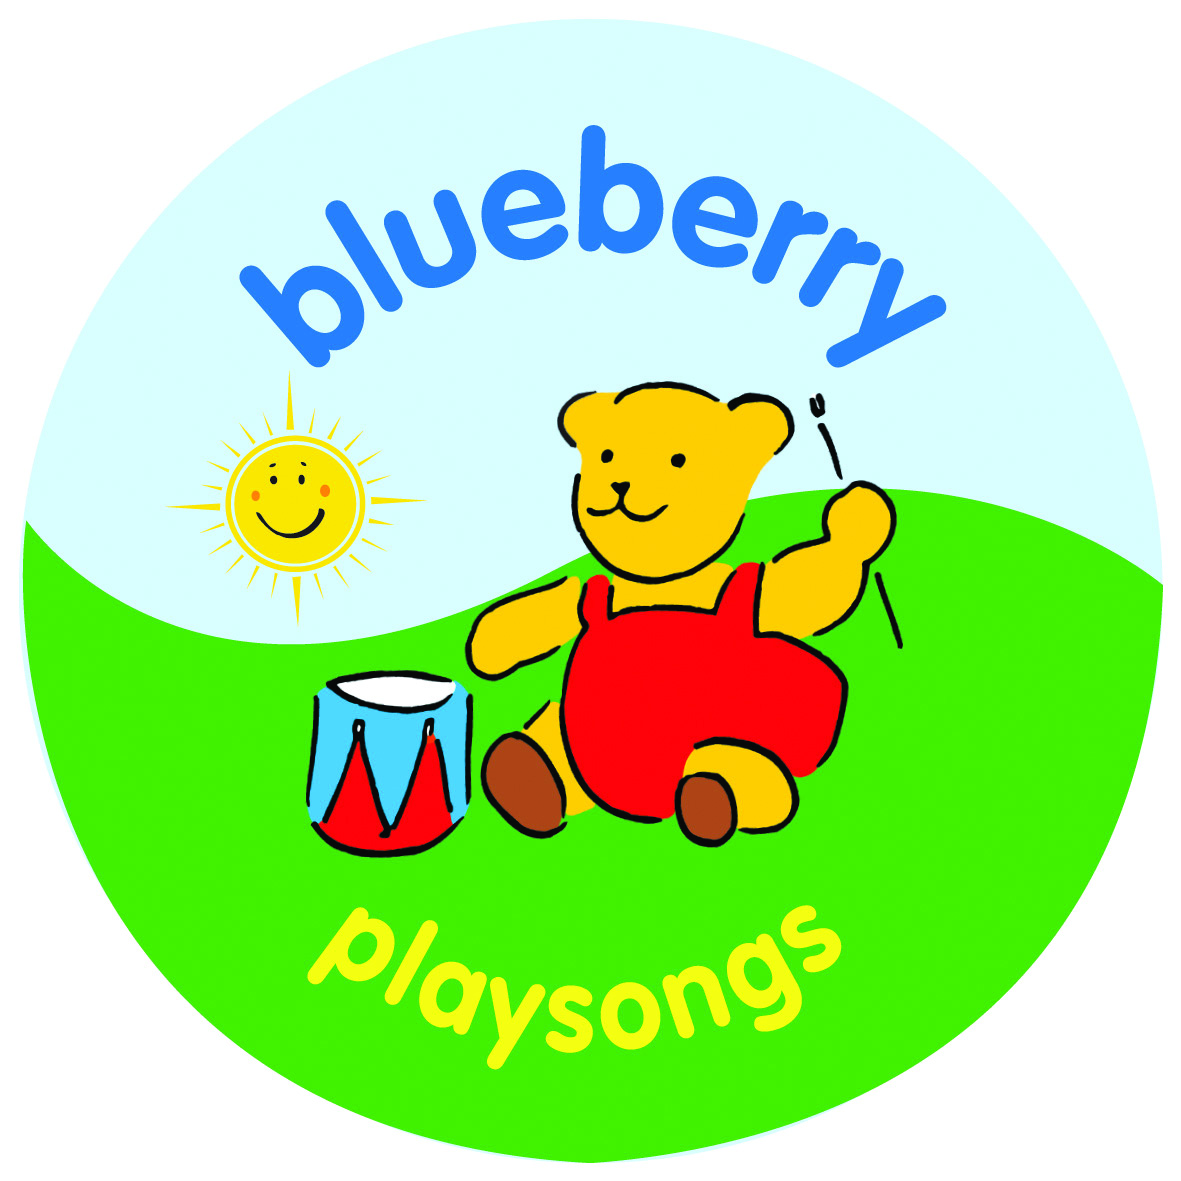 Blueberry Playsongs logo